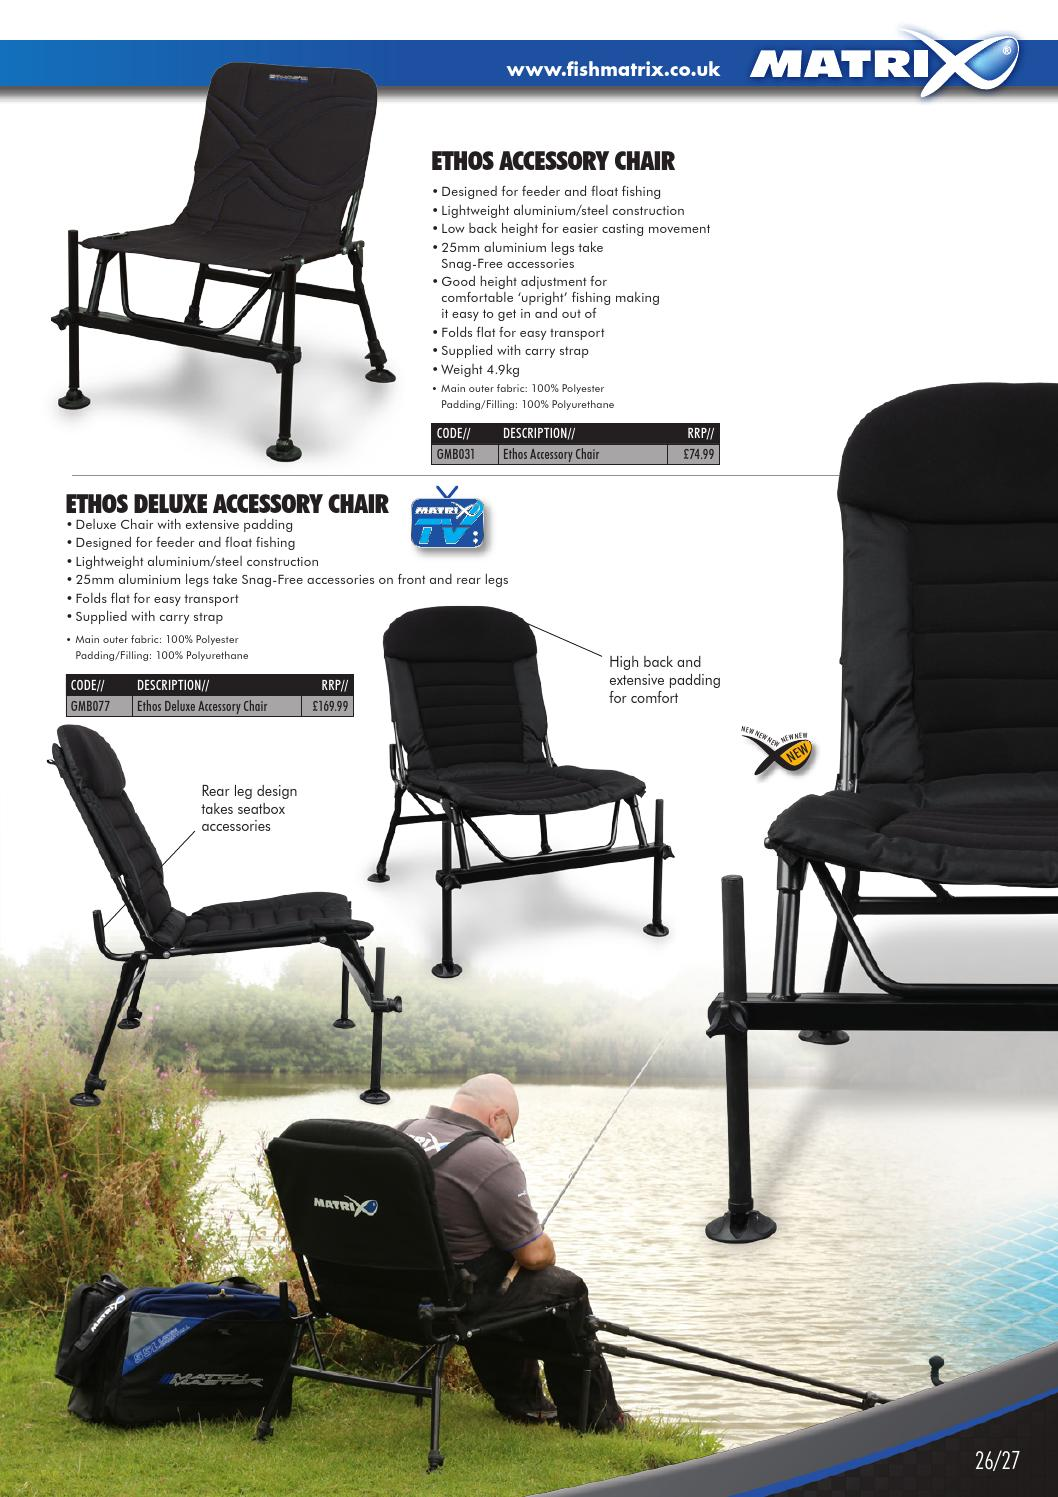 chair leg fishing floats cover rentals in charlotte nc matrix 2015 by fox international limited issuu